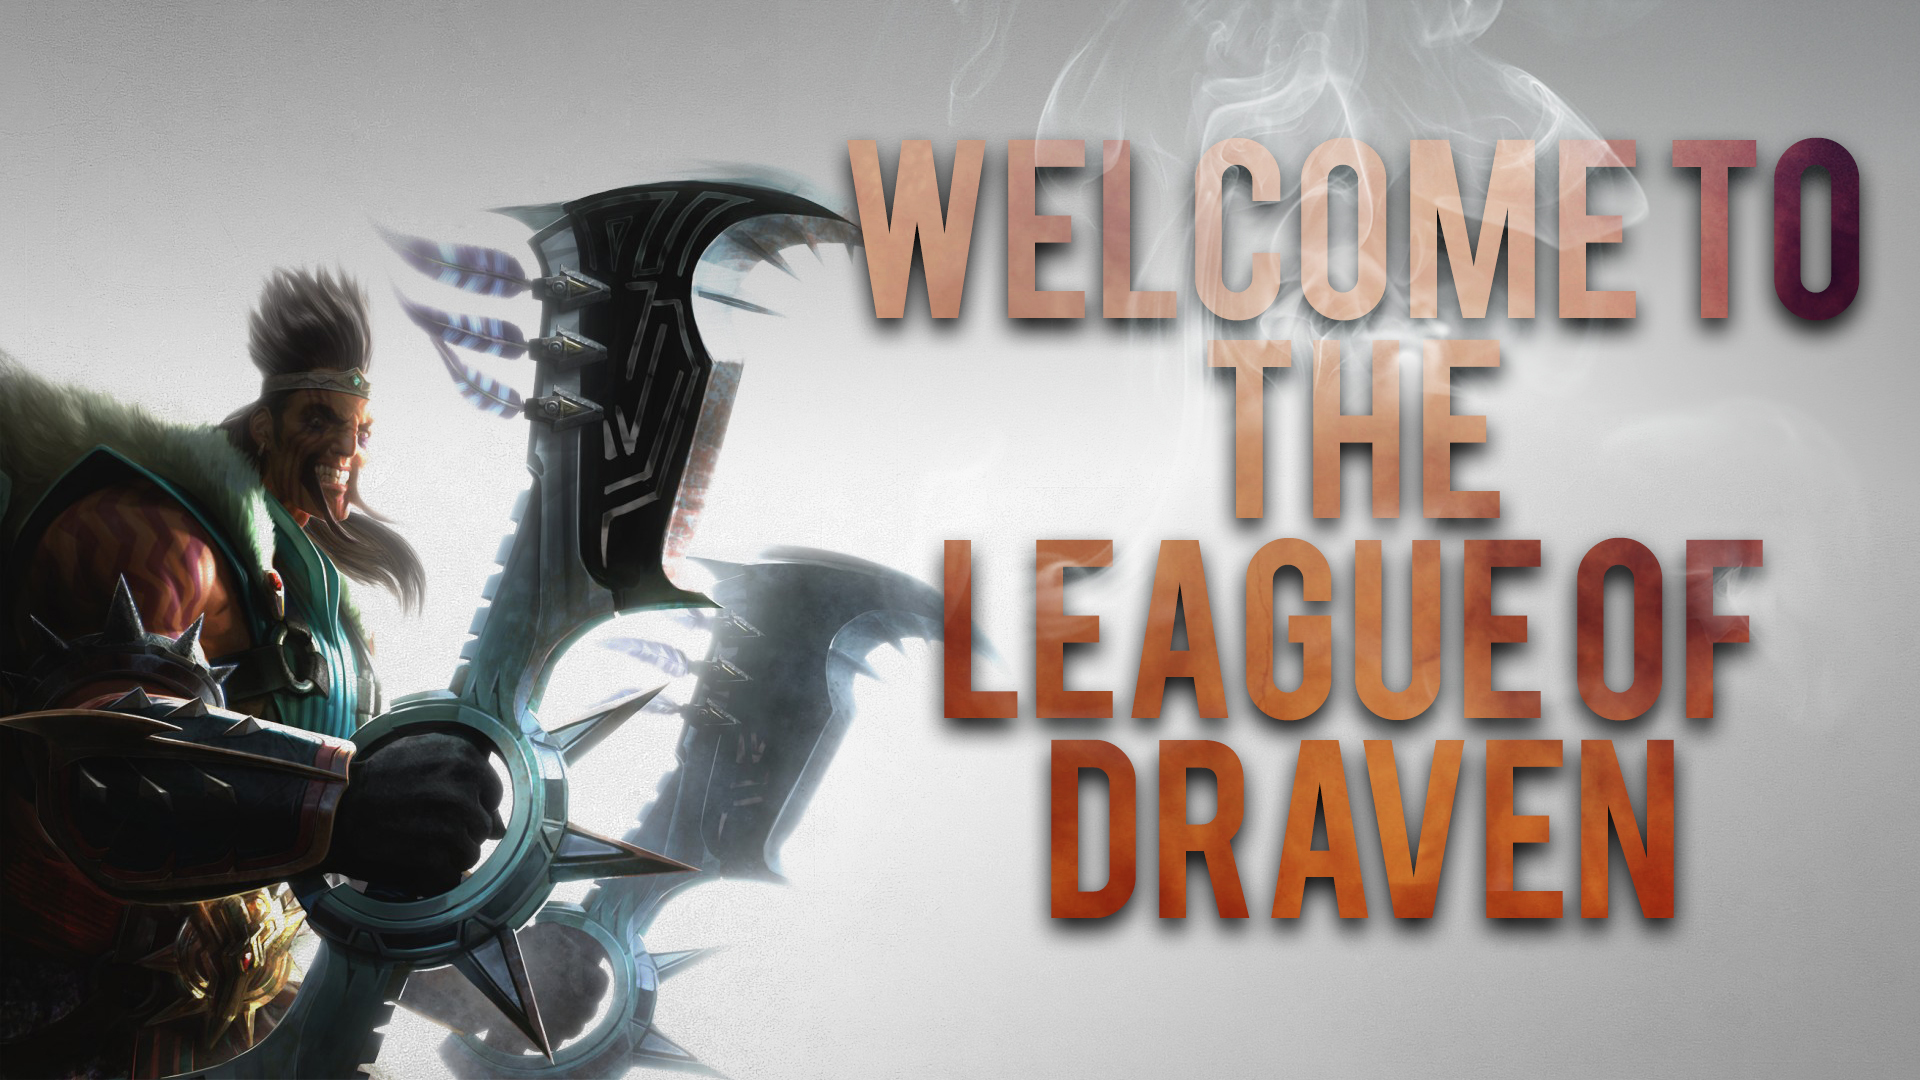 Welcome To League of Draven wallpaper